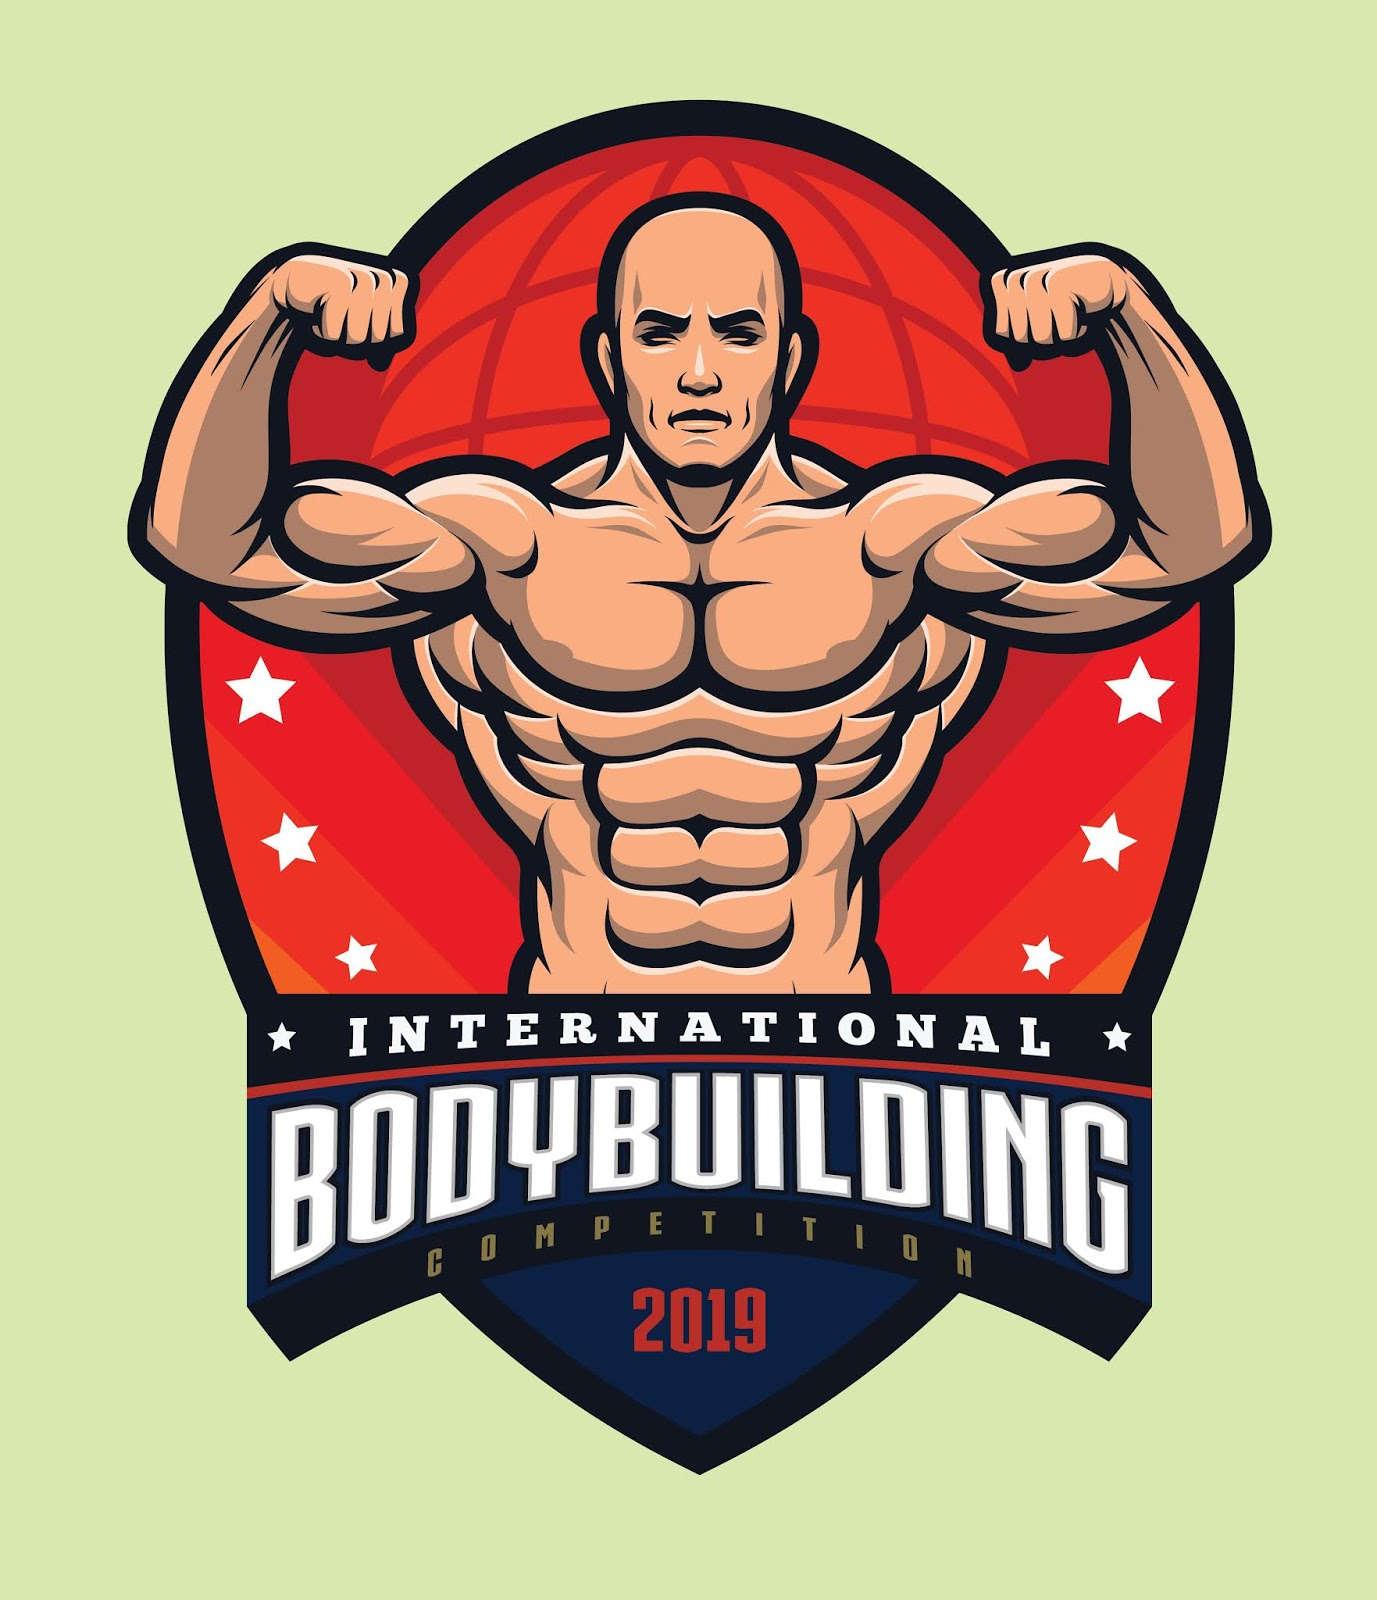 Bodybuilding Logo Template Free Download Vector CDR, AI, EPS and PNG Formats